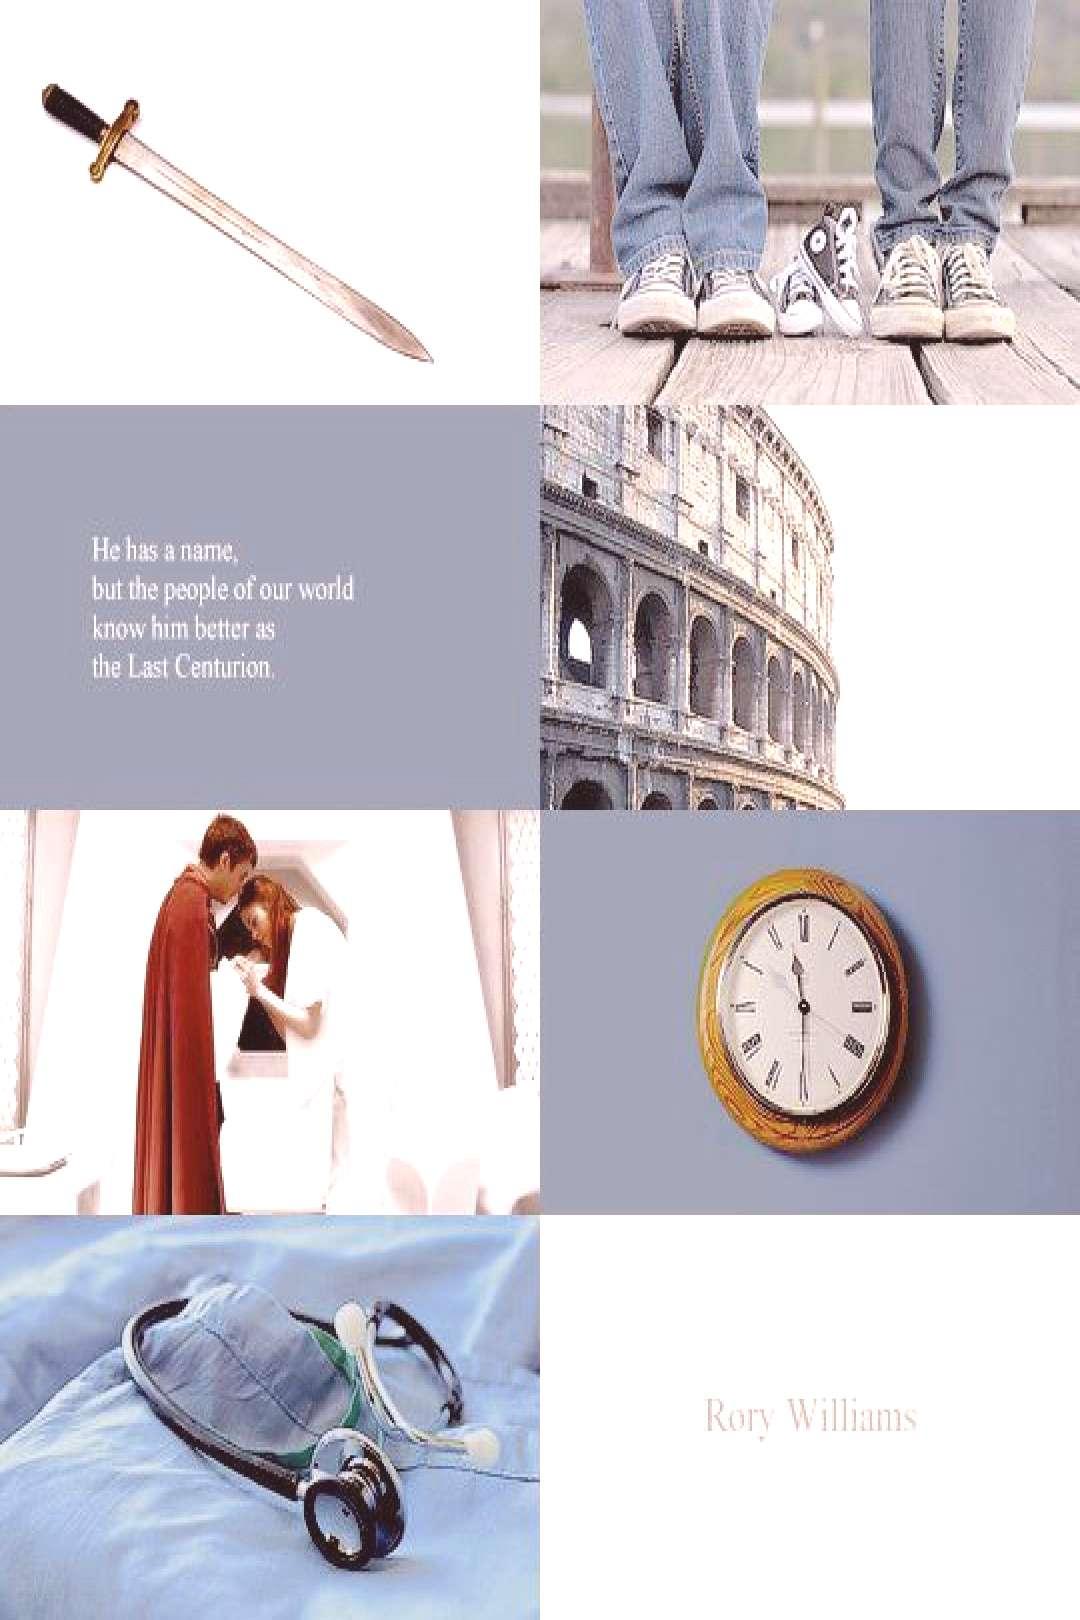 Rory Williams Facts Doctor Who Rory williams facts - rory williams aesthetic, rory williams arthur